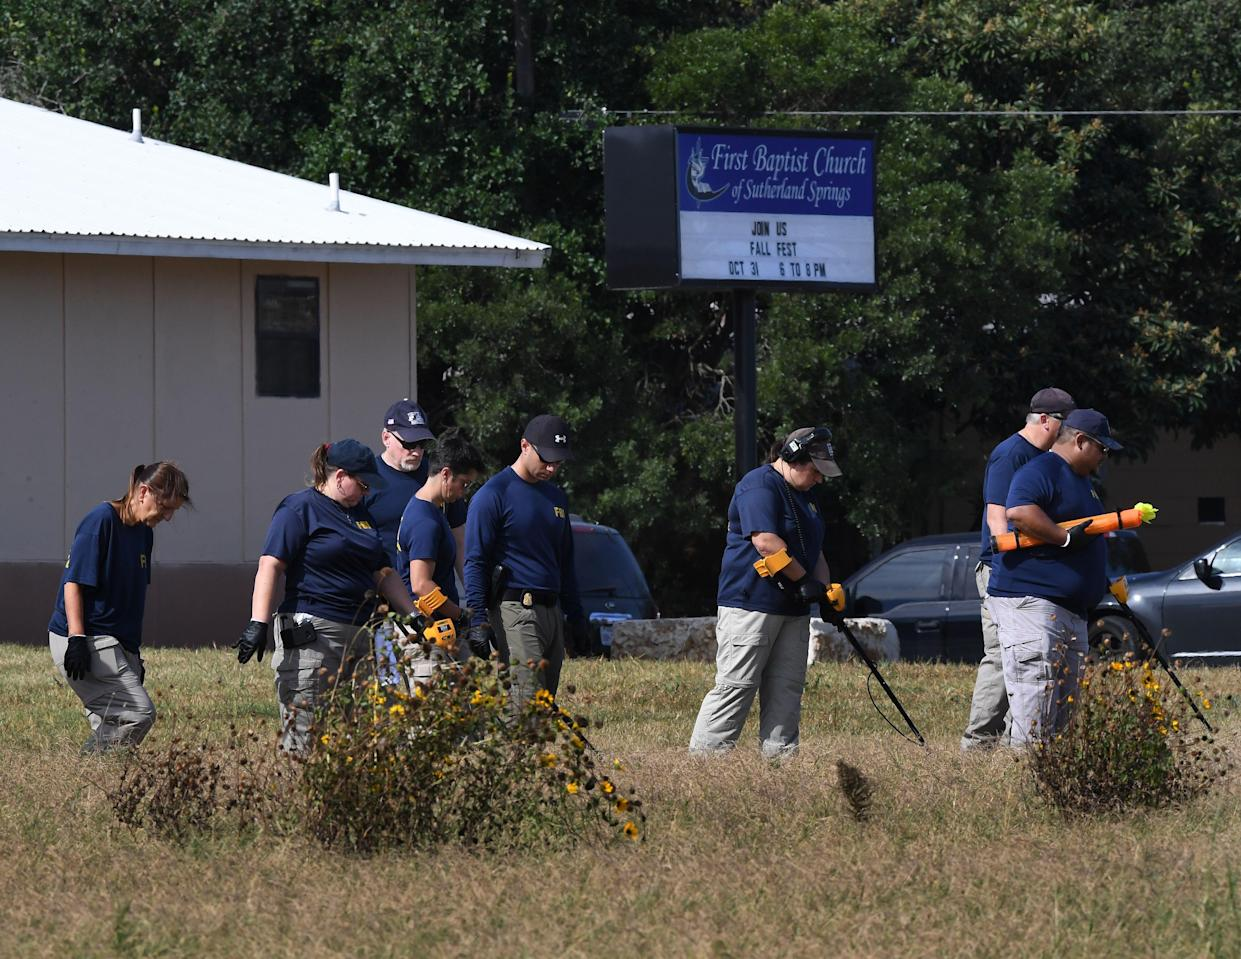 FBI agents search for clues on Monday at the entrance to the First Baptist Church, after the mass shooting in Sutherland Springs. (Photo: Mark Ralston/AFP/Getty Images)